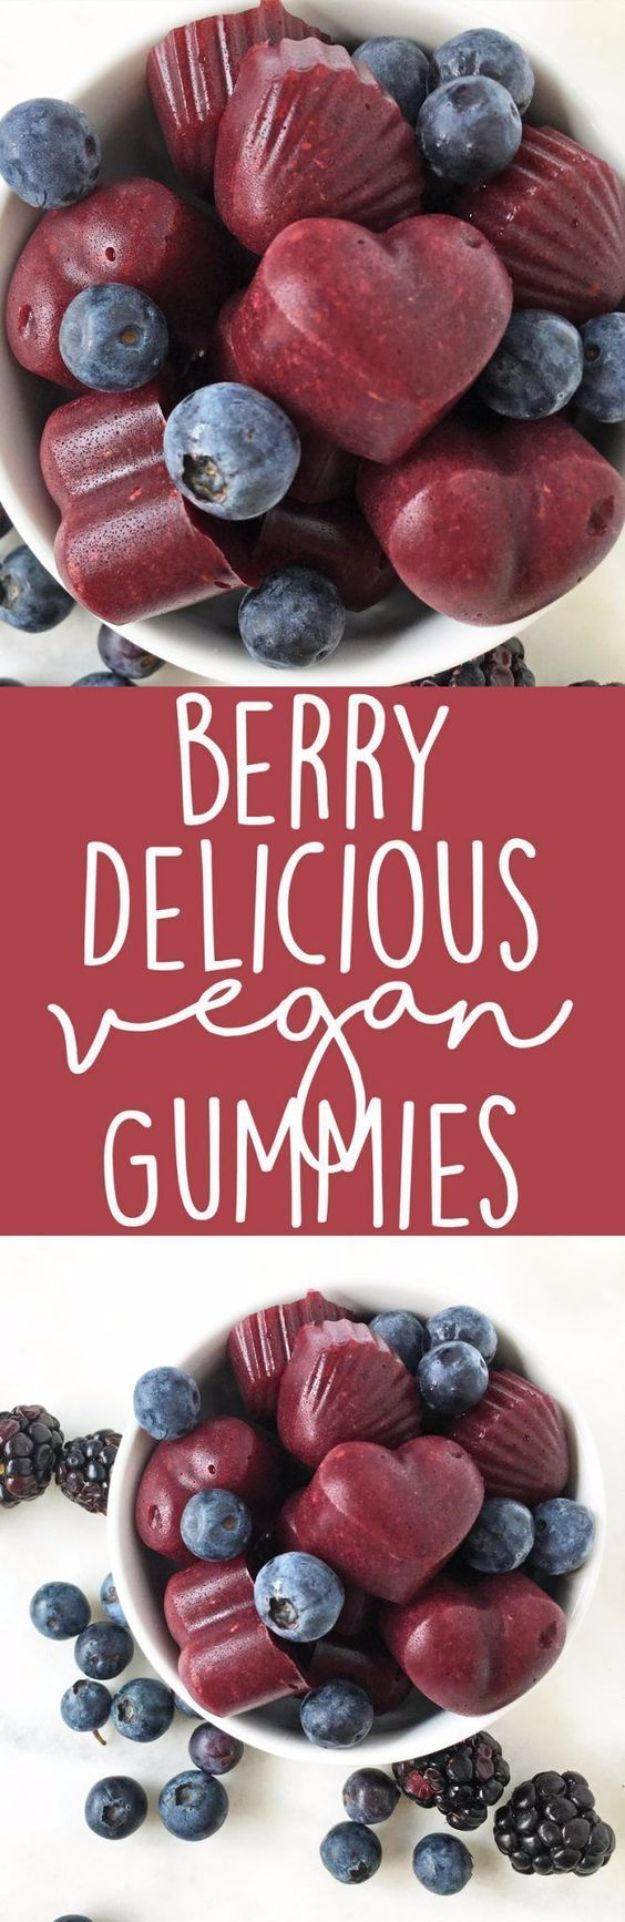 Easy Desserts for Teens to Make at Home - Berry Delicious Vegan Gummies - Cool Dessert Recipes That Are Simple and Quick Enough For Teens, Teenagers and Older Kids - Best Dorm Snacks and Ideas - Microwave, No Bake, 3 Ingredient, Chocolate, Mug Cakes and More http://diyjoy.com/desserts-teens-to-make-at-home